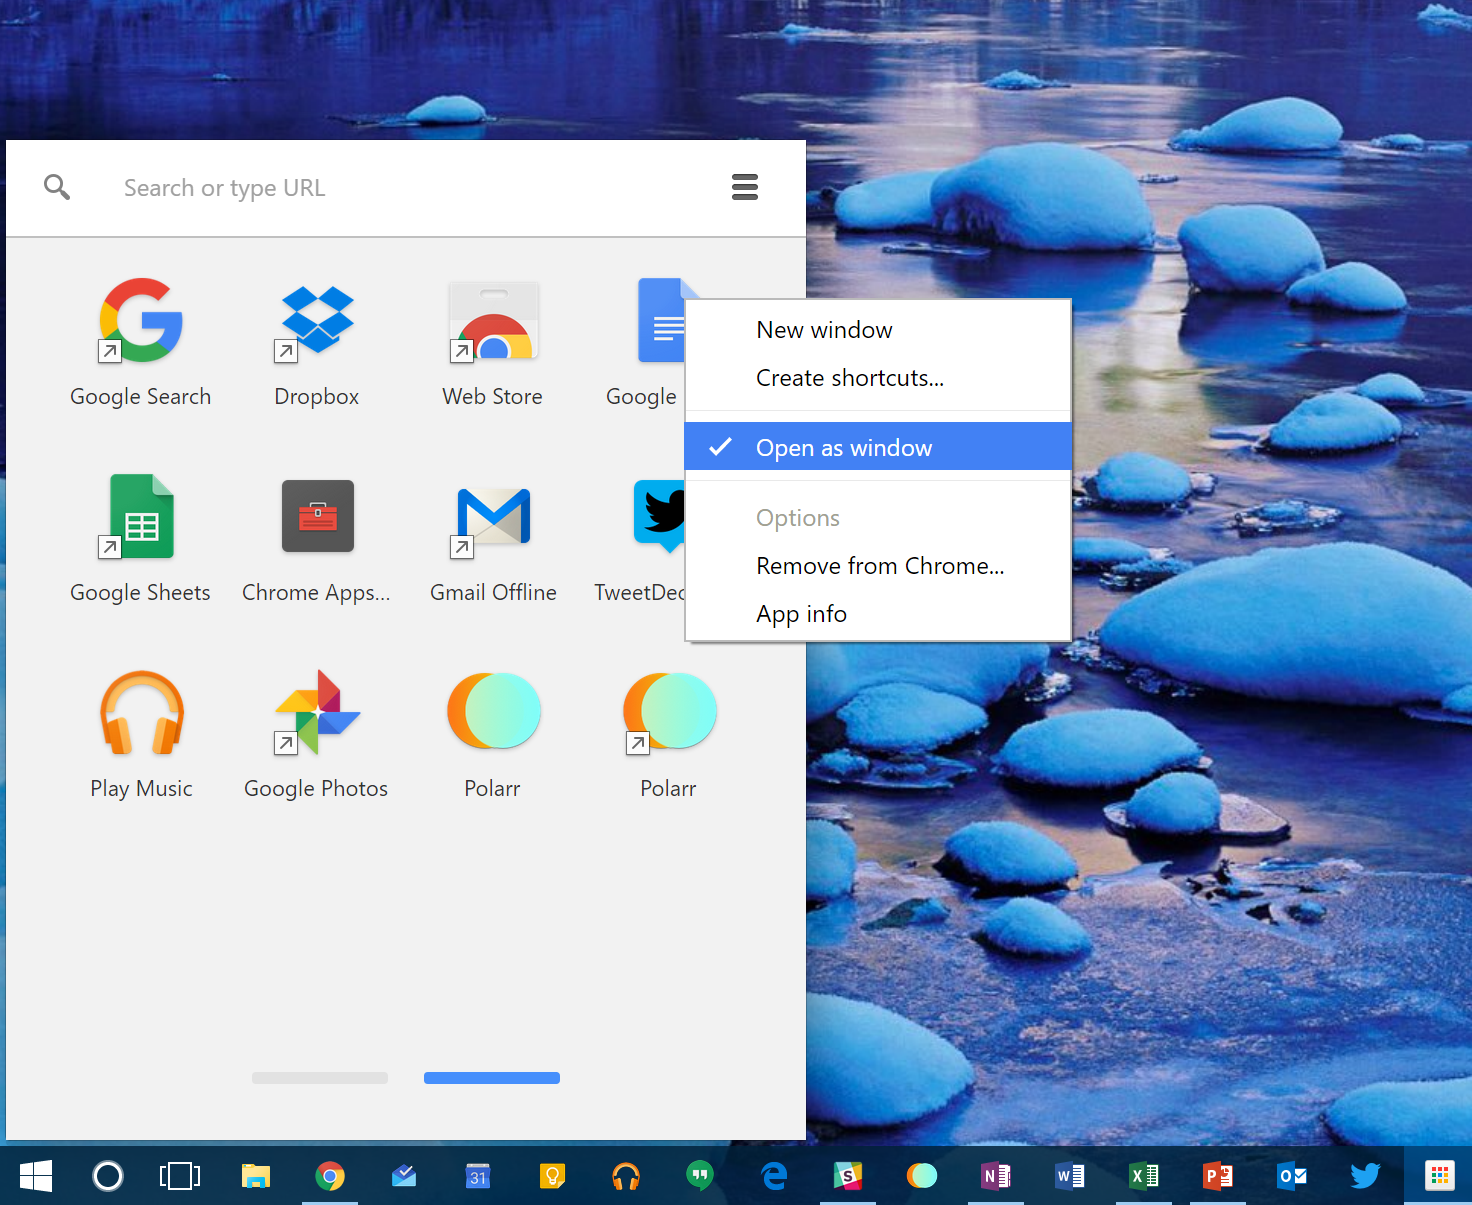 How To Make Google Drive Apps Look And Work More Like Microsoft